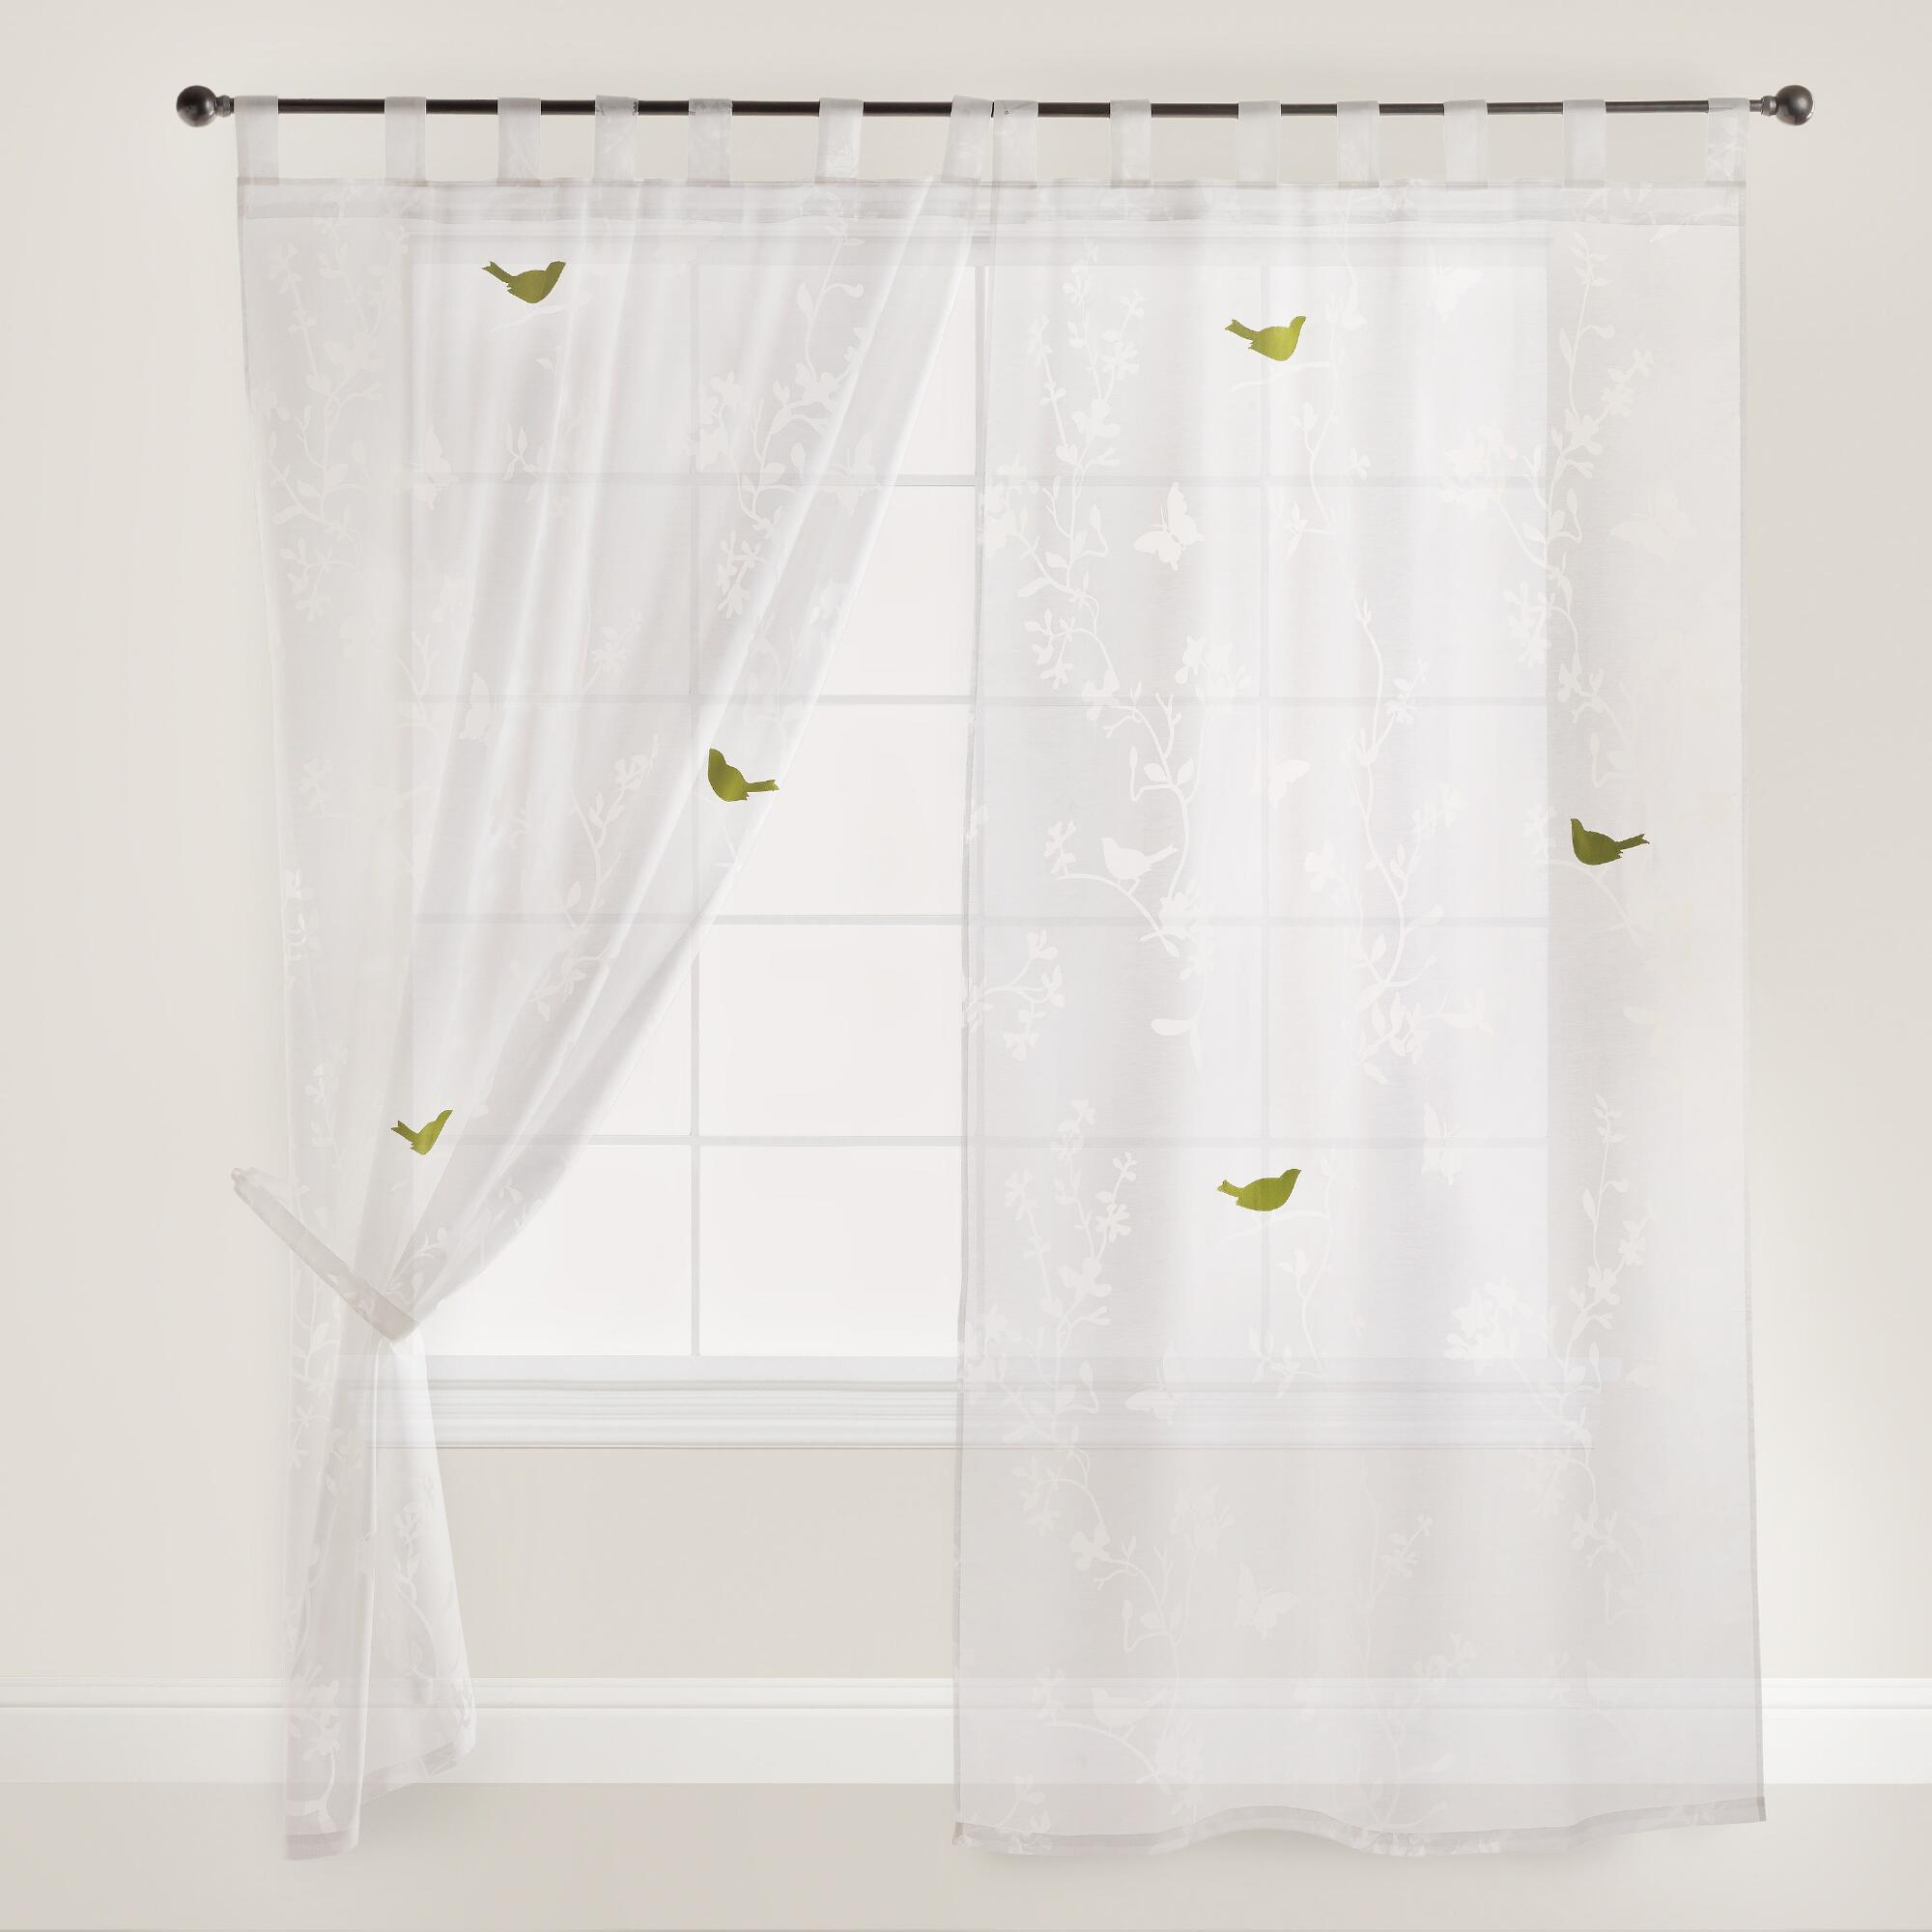 and bird breakfast with birds for curtain colored curtains appealing style ikea kitchen everything room